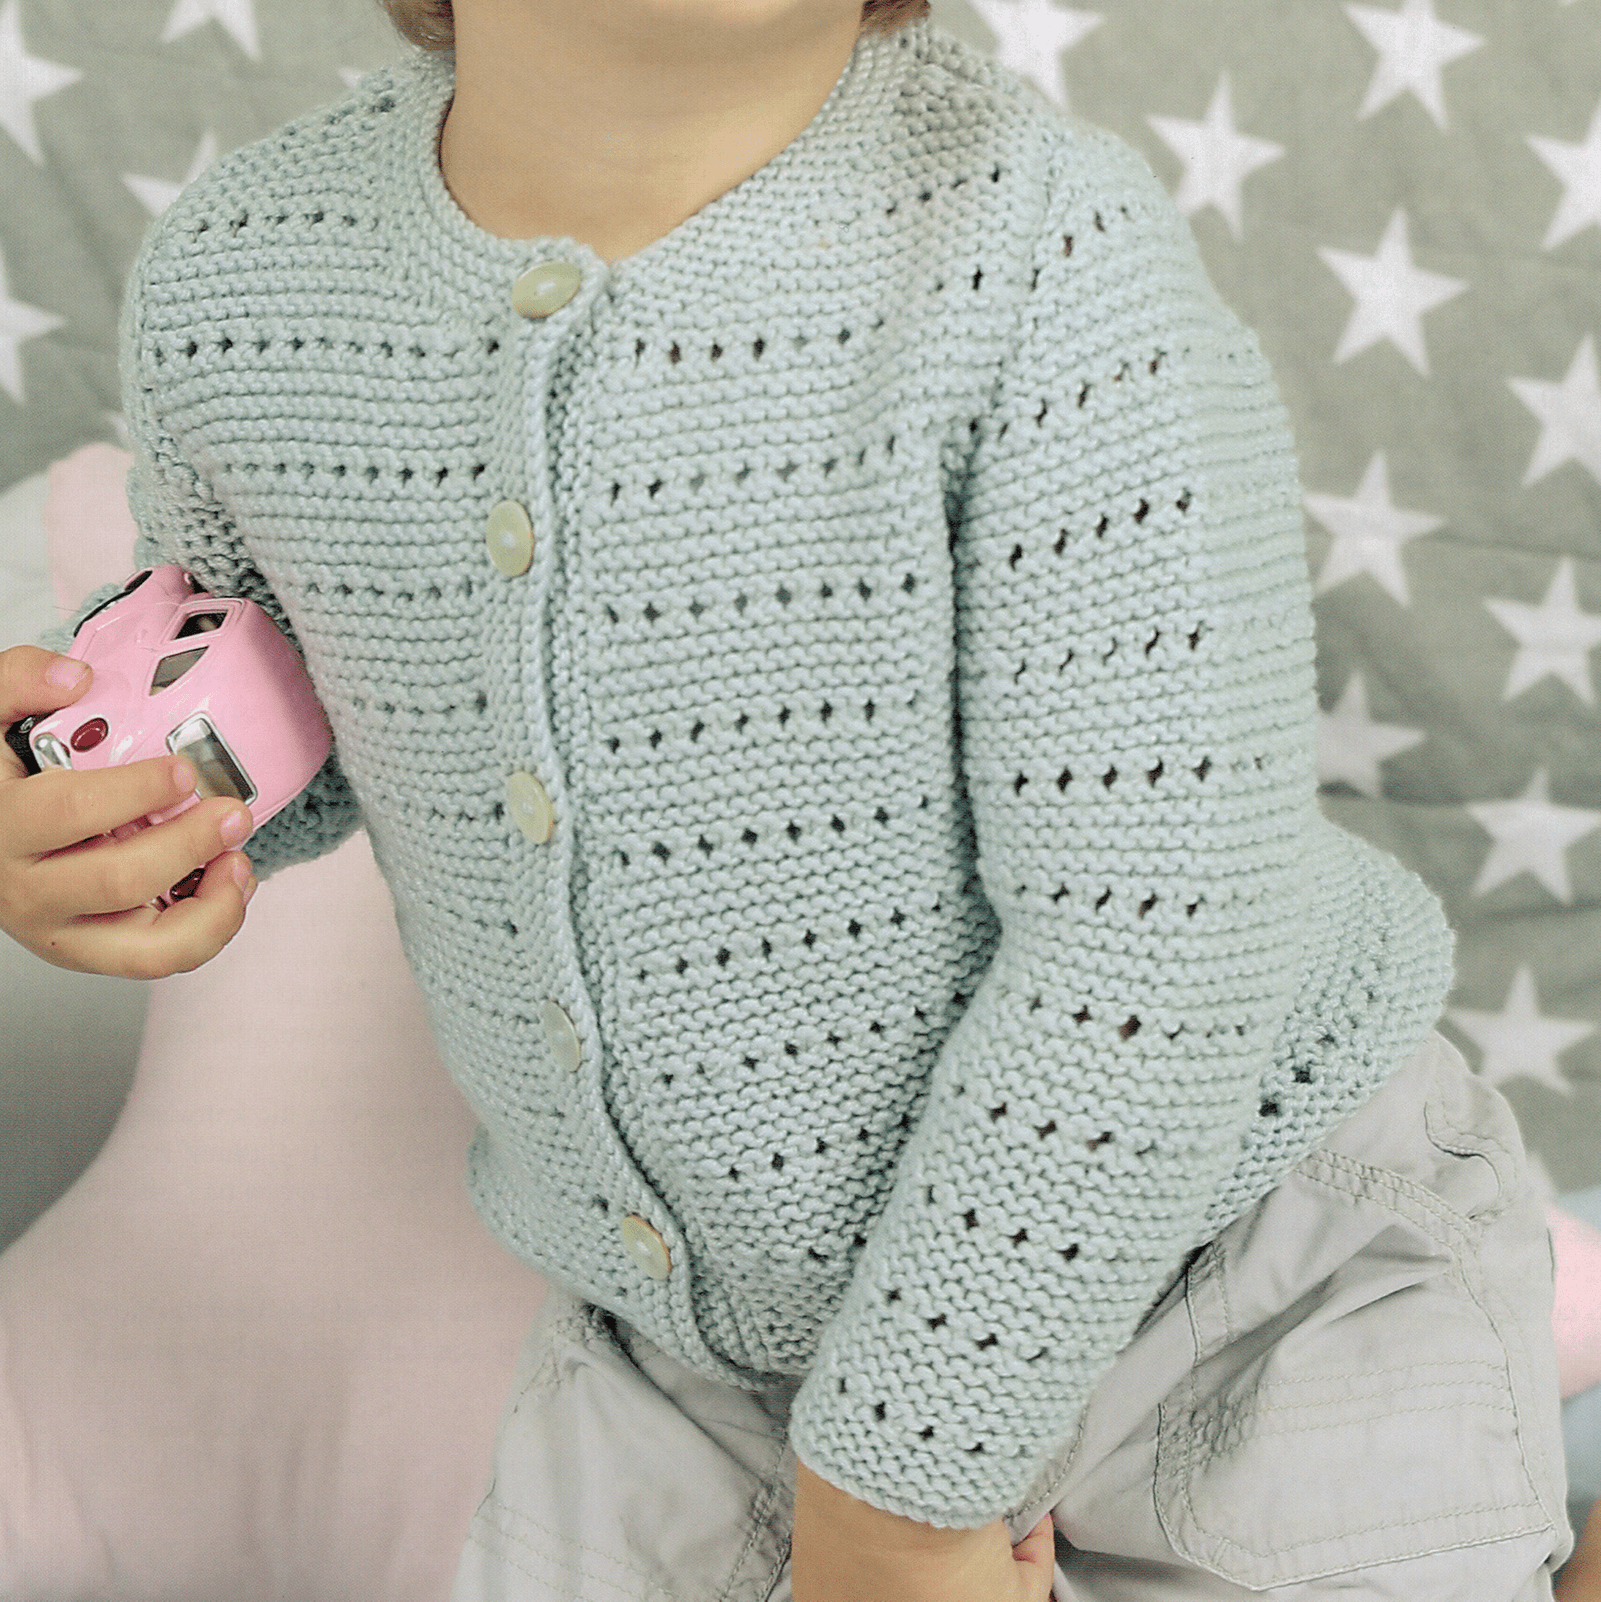 Sienna Baby Sweater + FREE BONUS book of baby patterns!*